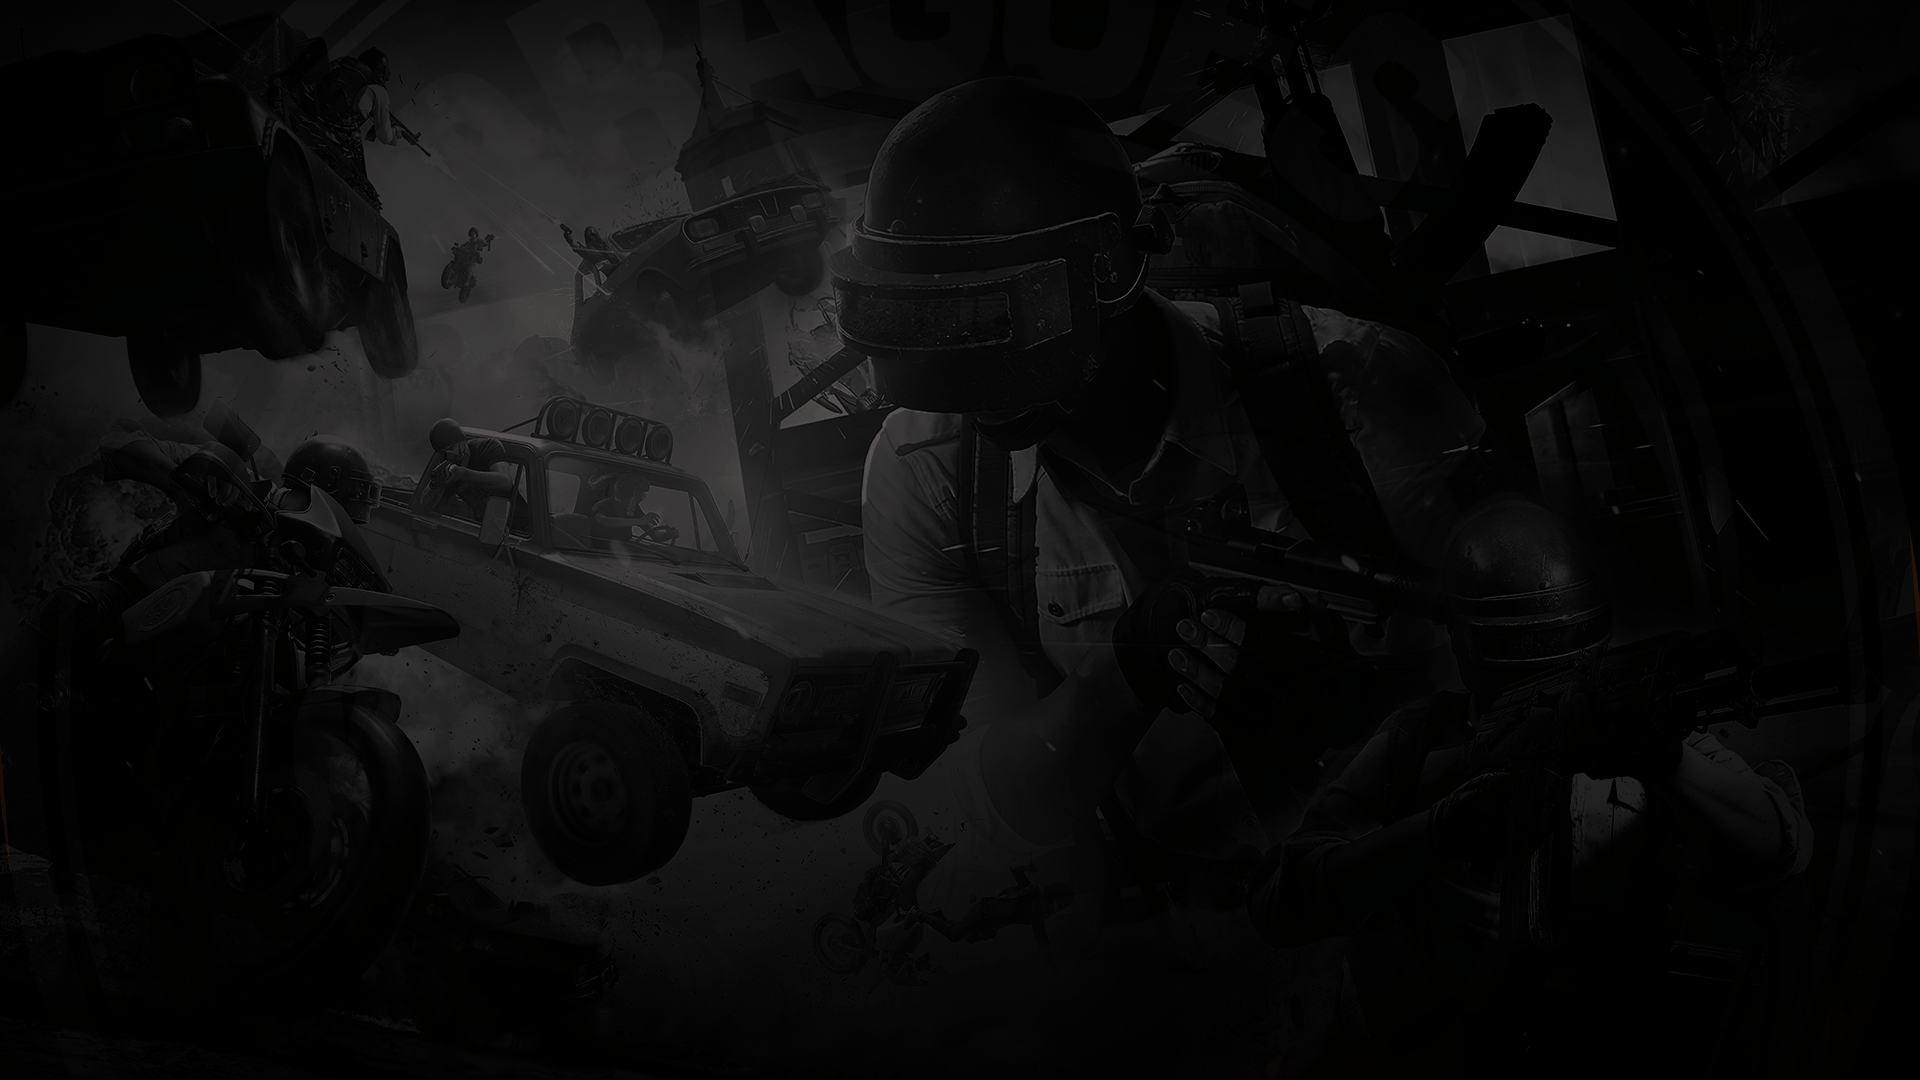 Gaming Black And White Wallpaper 1920x1080